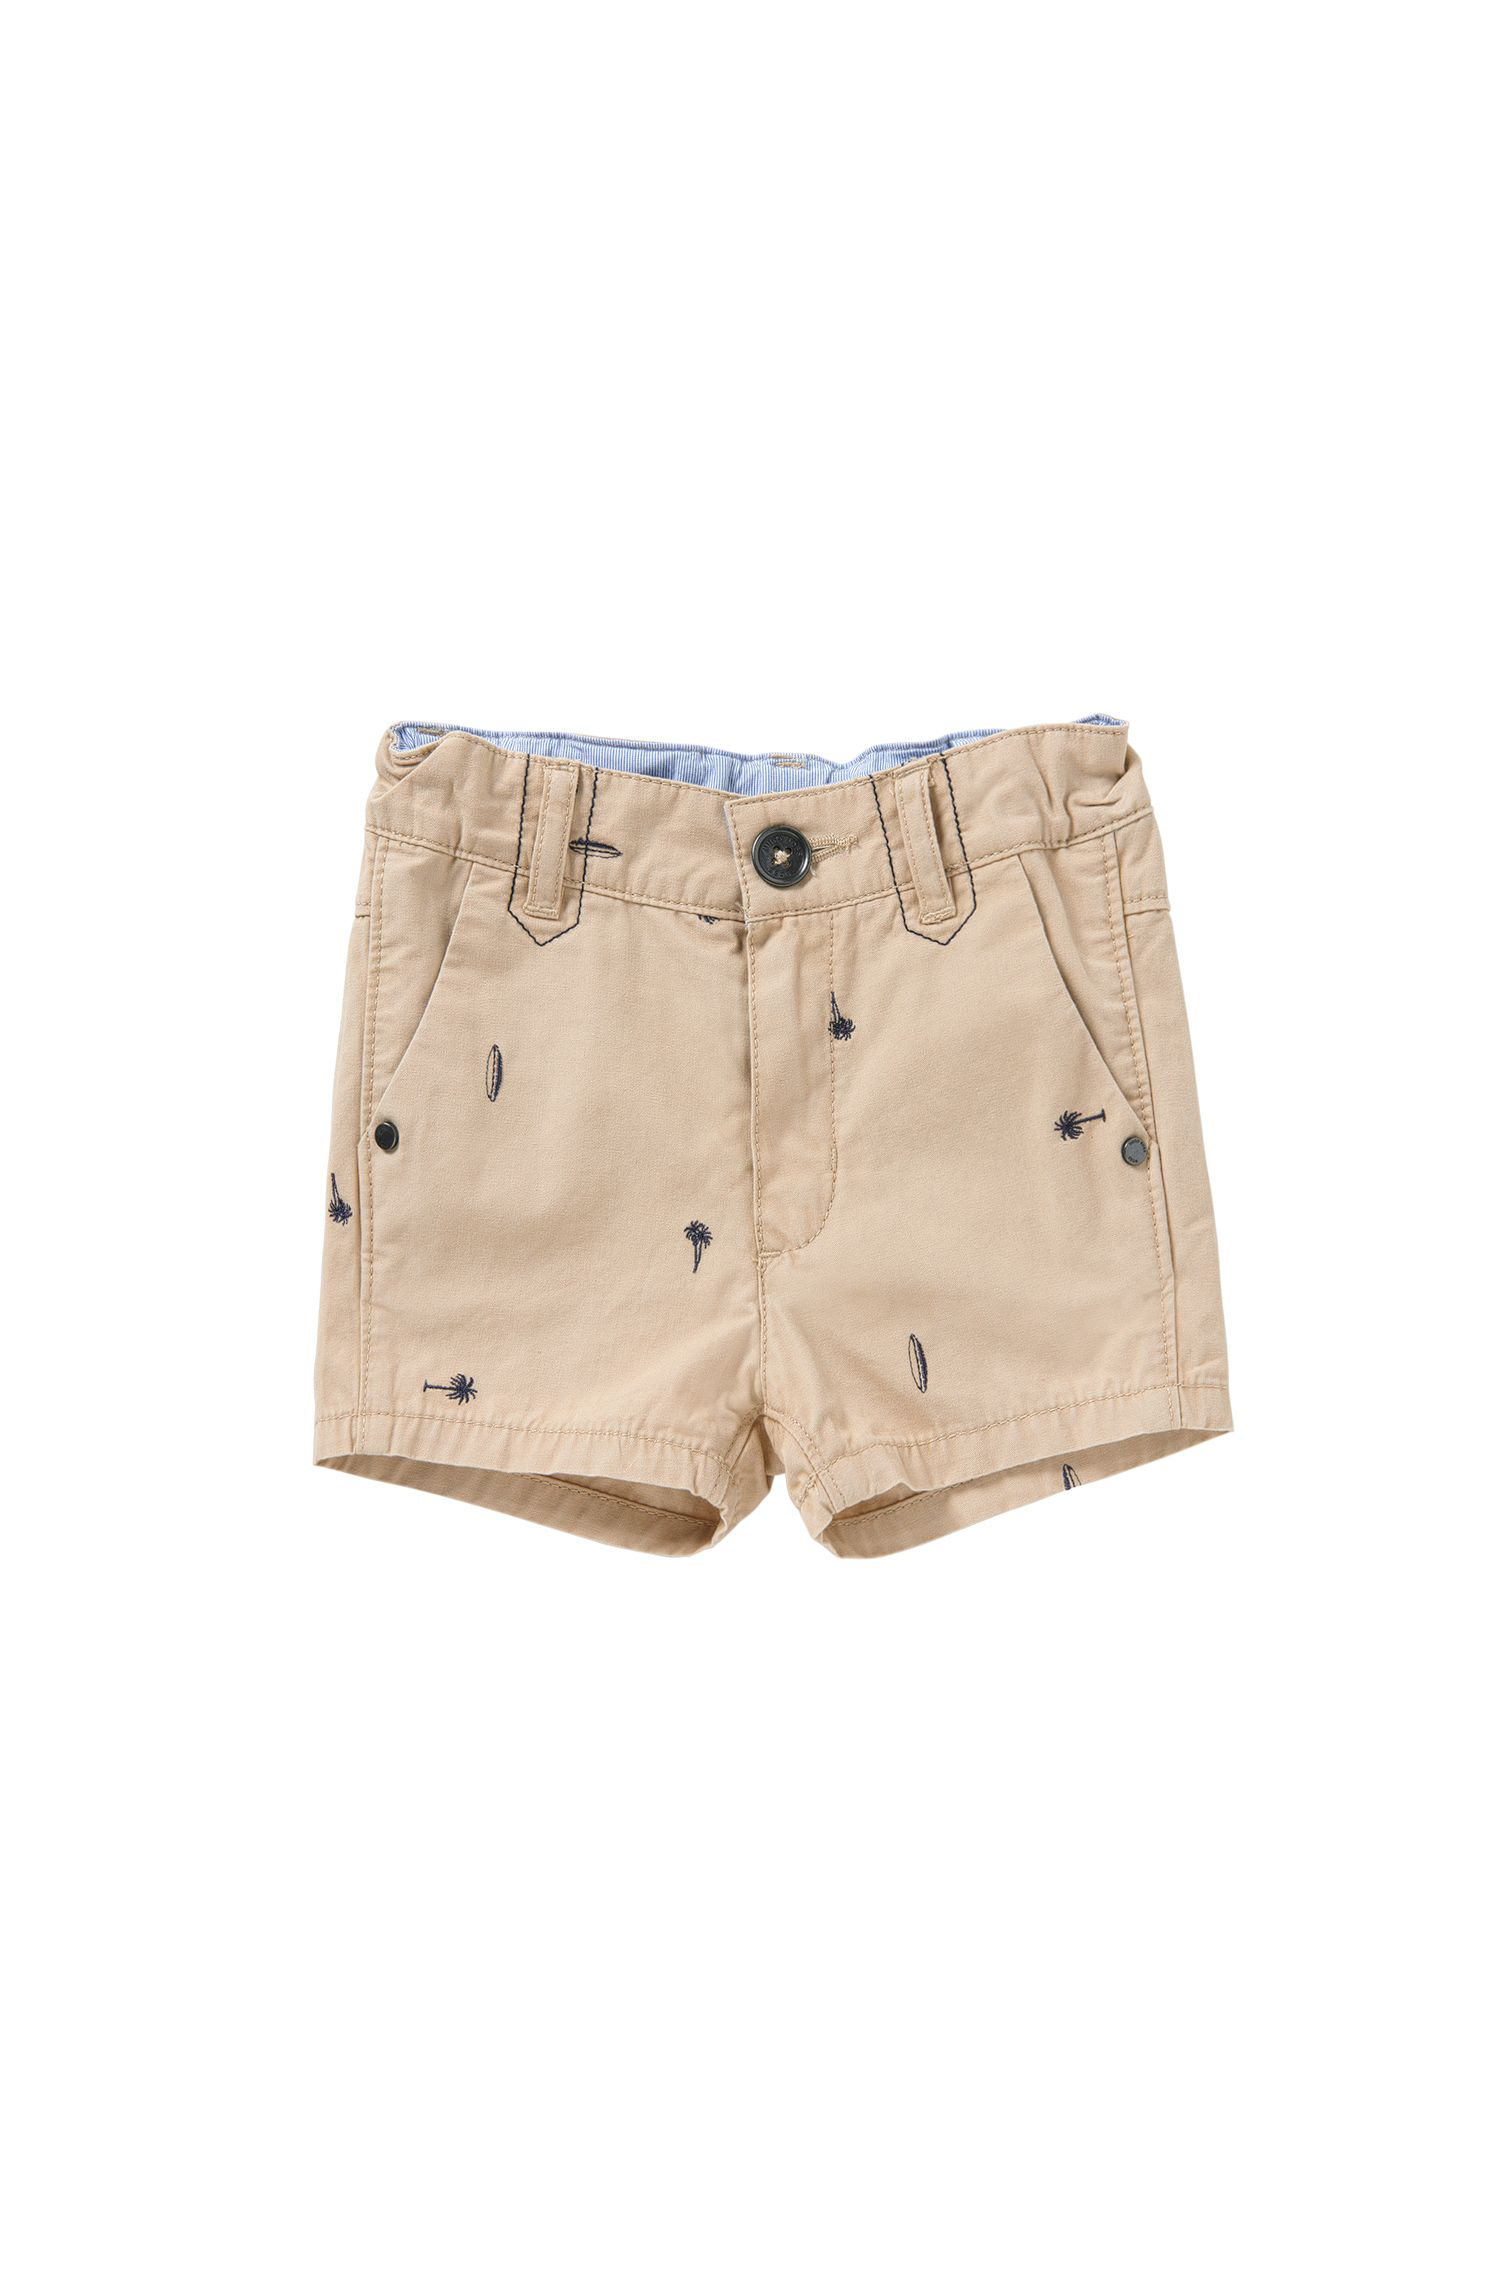 'J04219' | Boys Cotton Embroidered Shorts